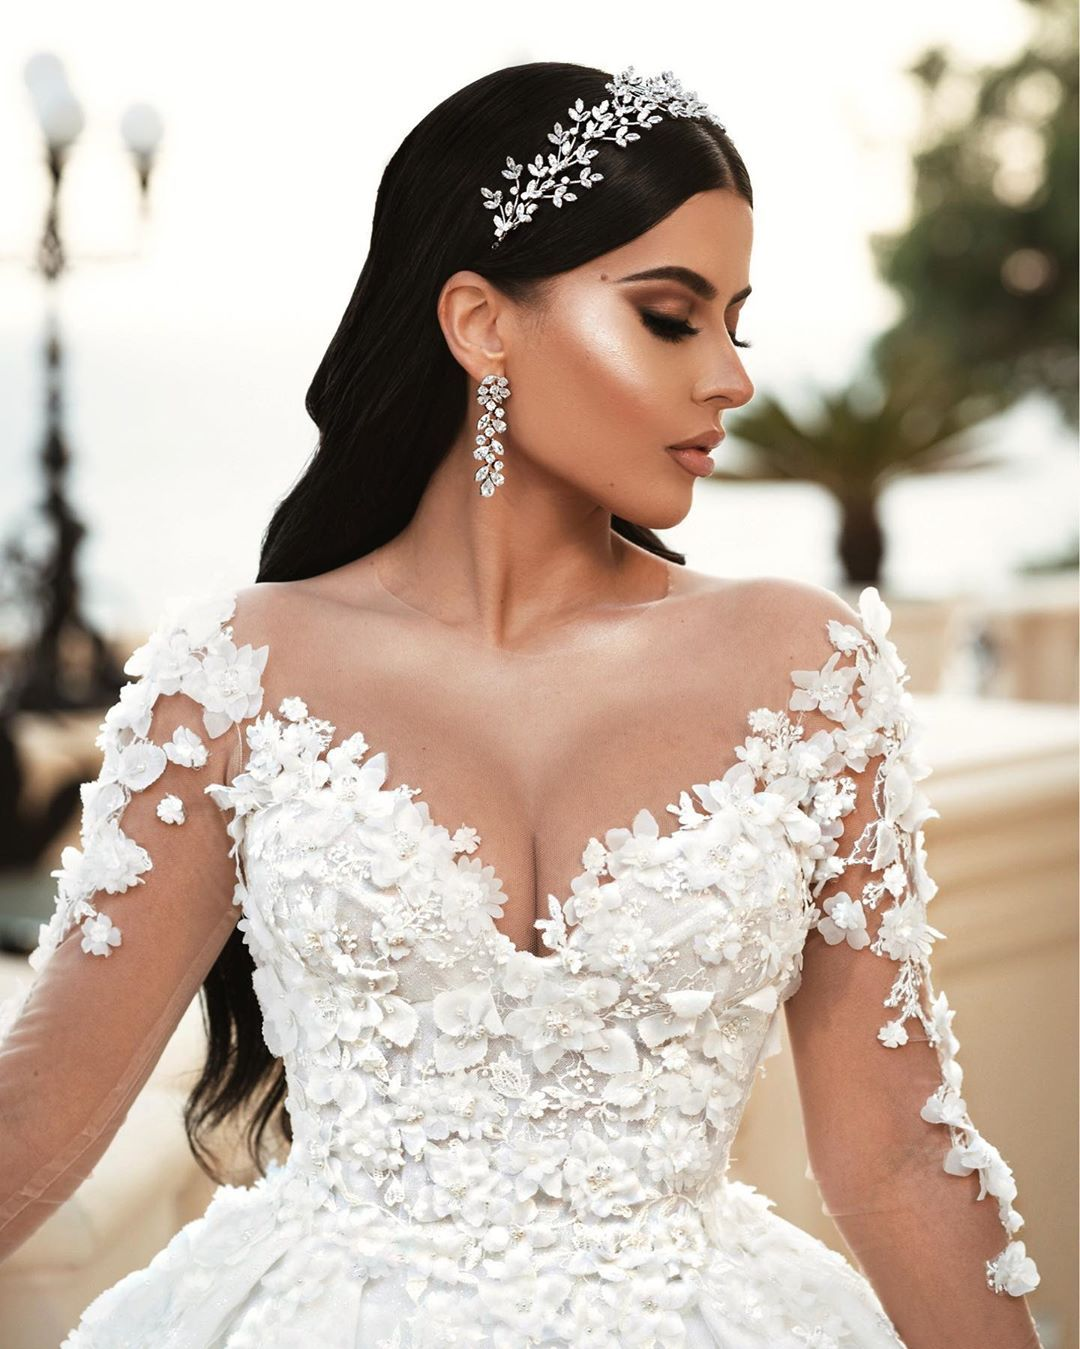 Anastasia Beverly Hills On Instagram So Gorgeous Amrezy Wedding